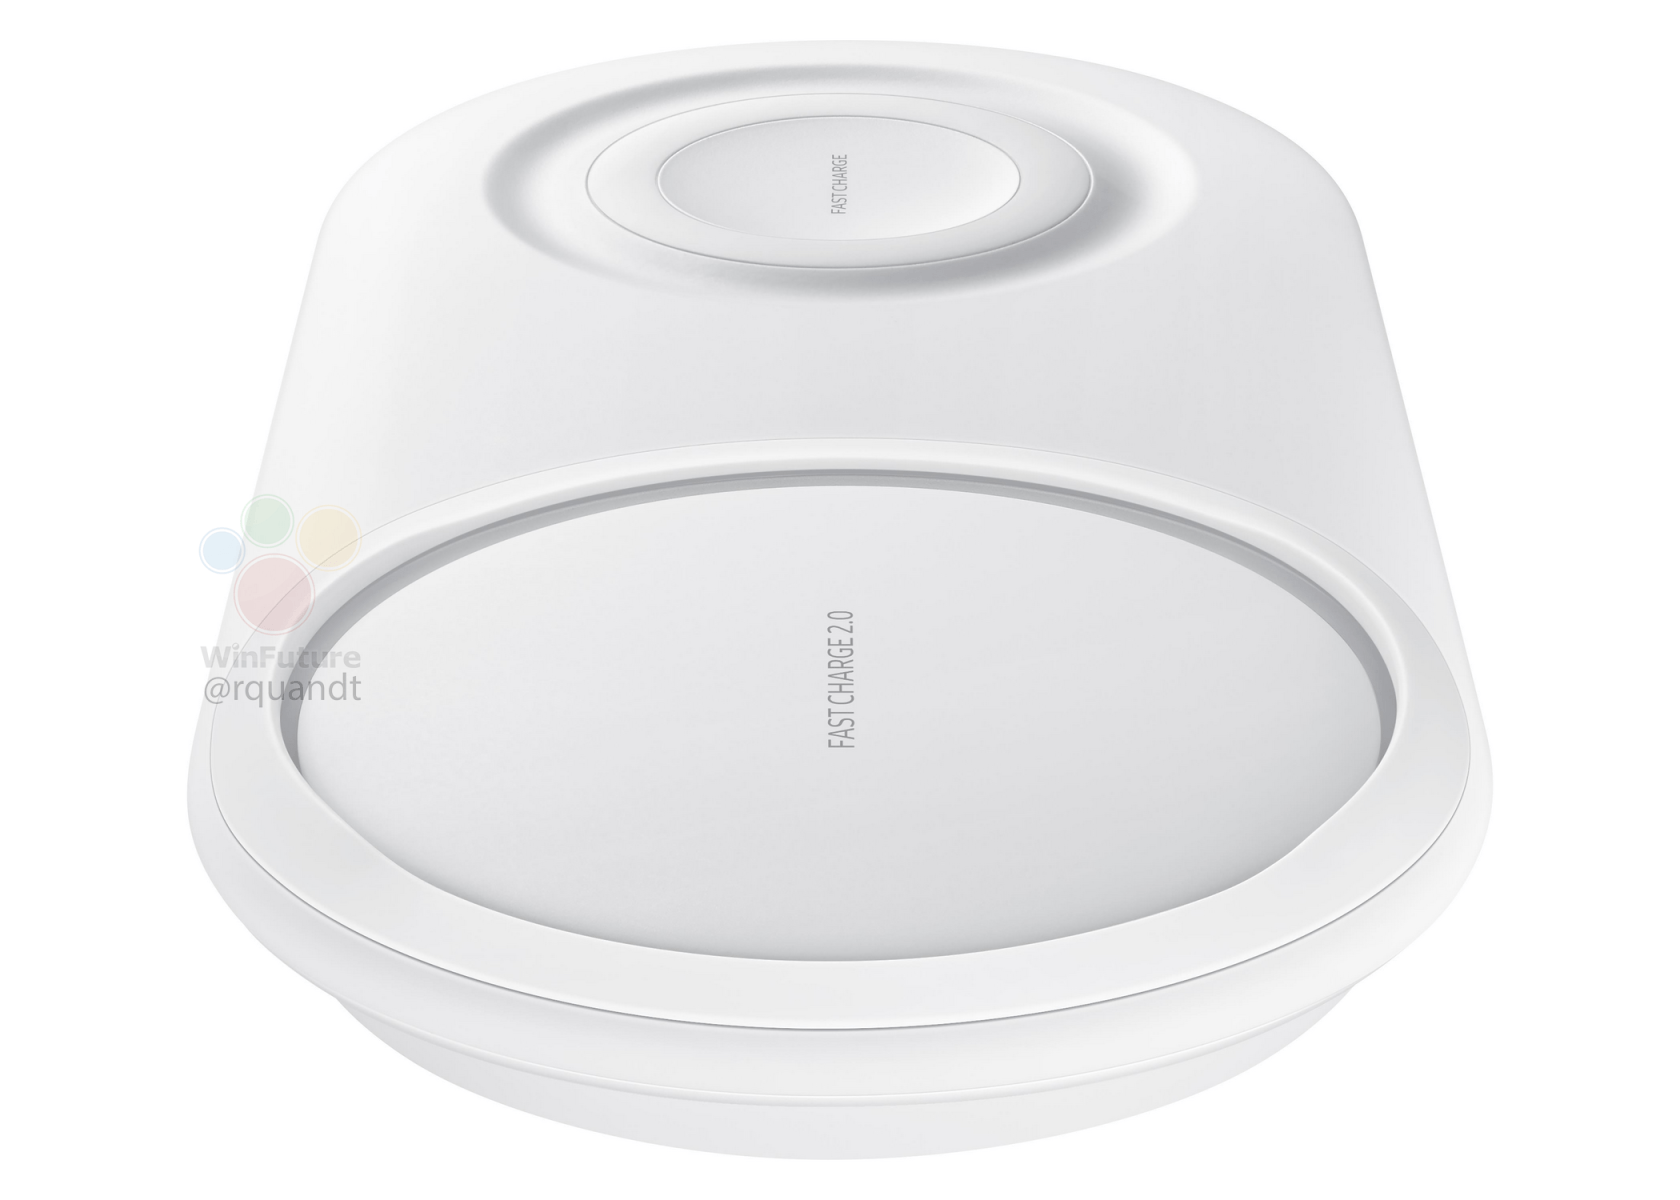 New Samsung Wireless Charging Pad and Power bank leaks ahead of the official launch 2